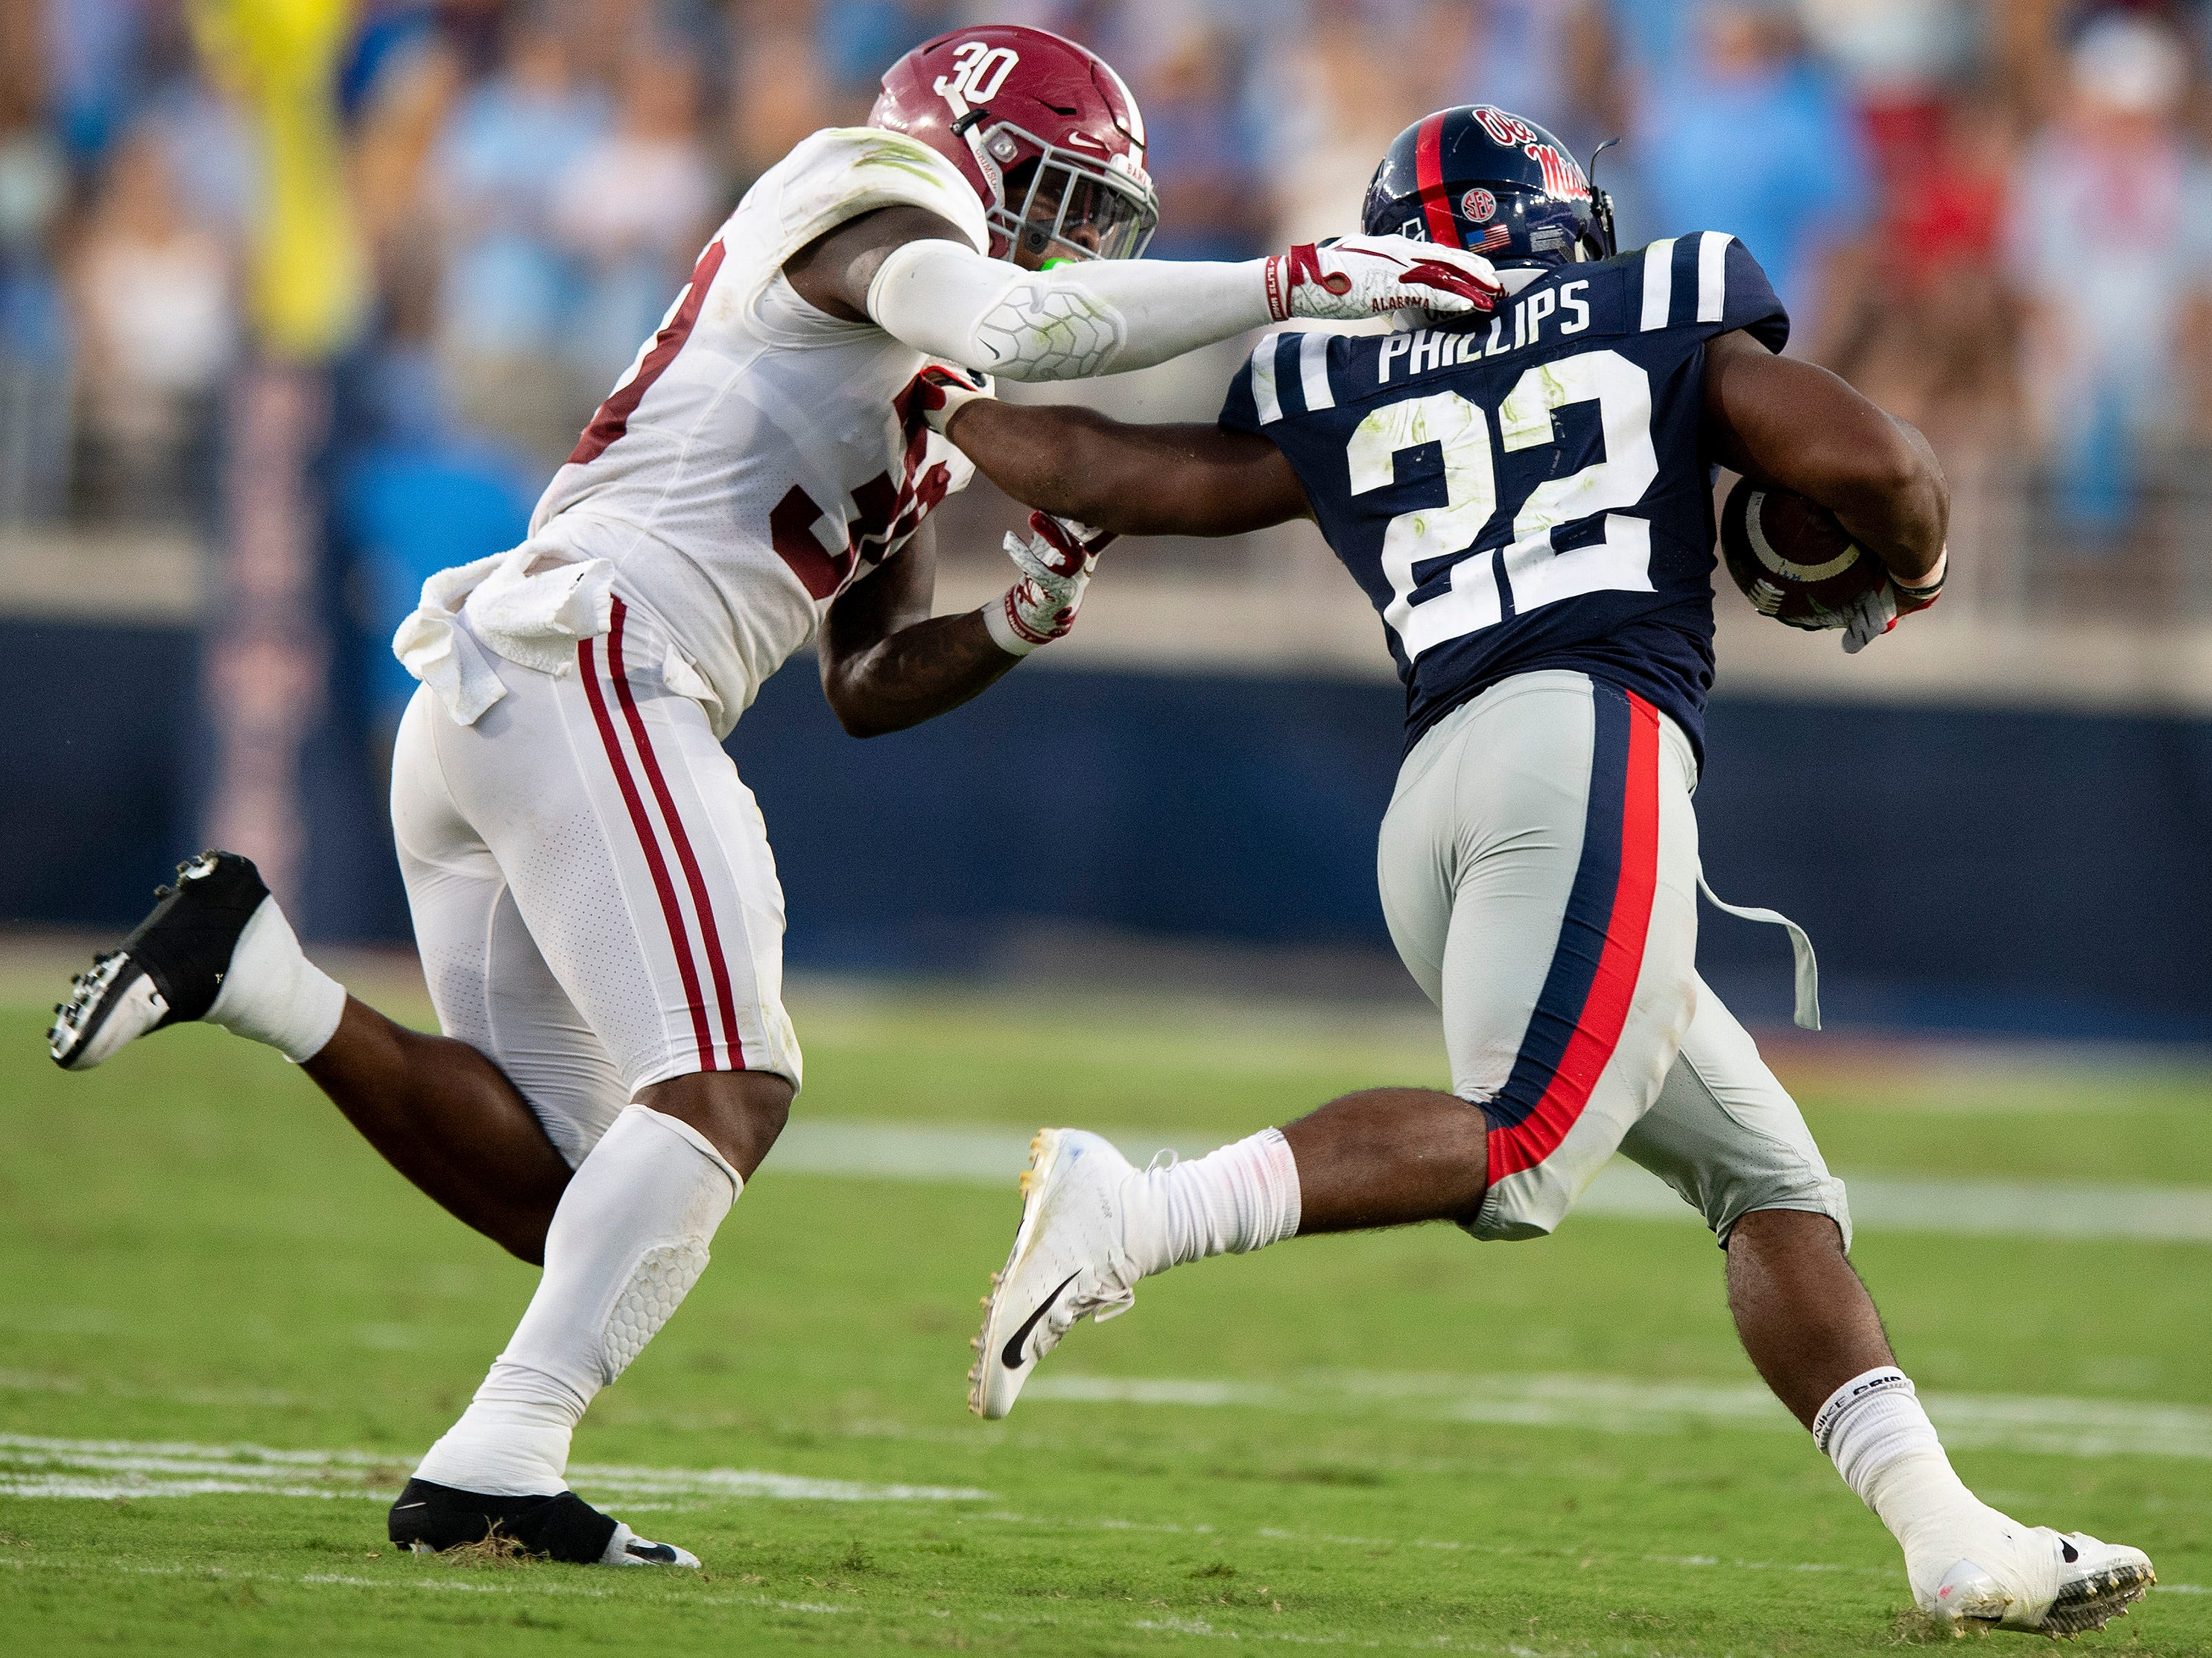 Alabama linebacker Mack Wilson (30) tackles Ole Miss running back Scottie Phillips (22) In first half action in Oxford, Ms., on Saturday September 15, 2018.